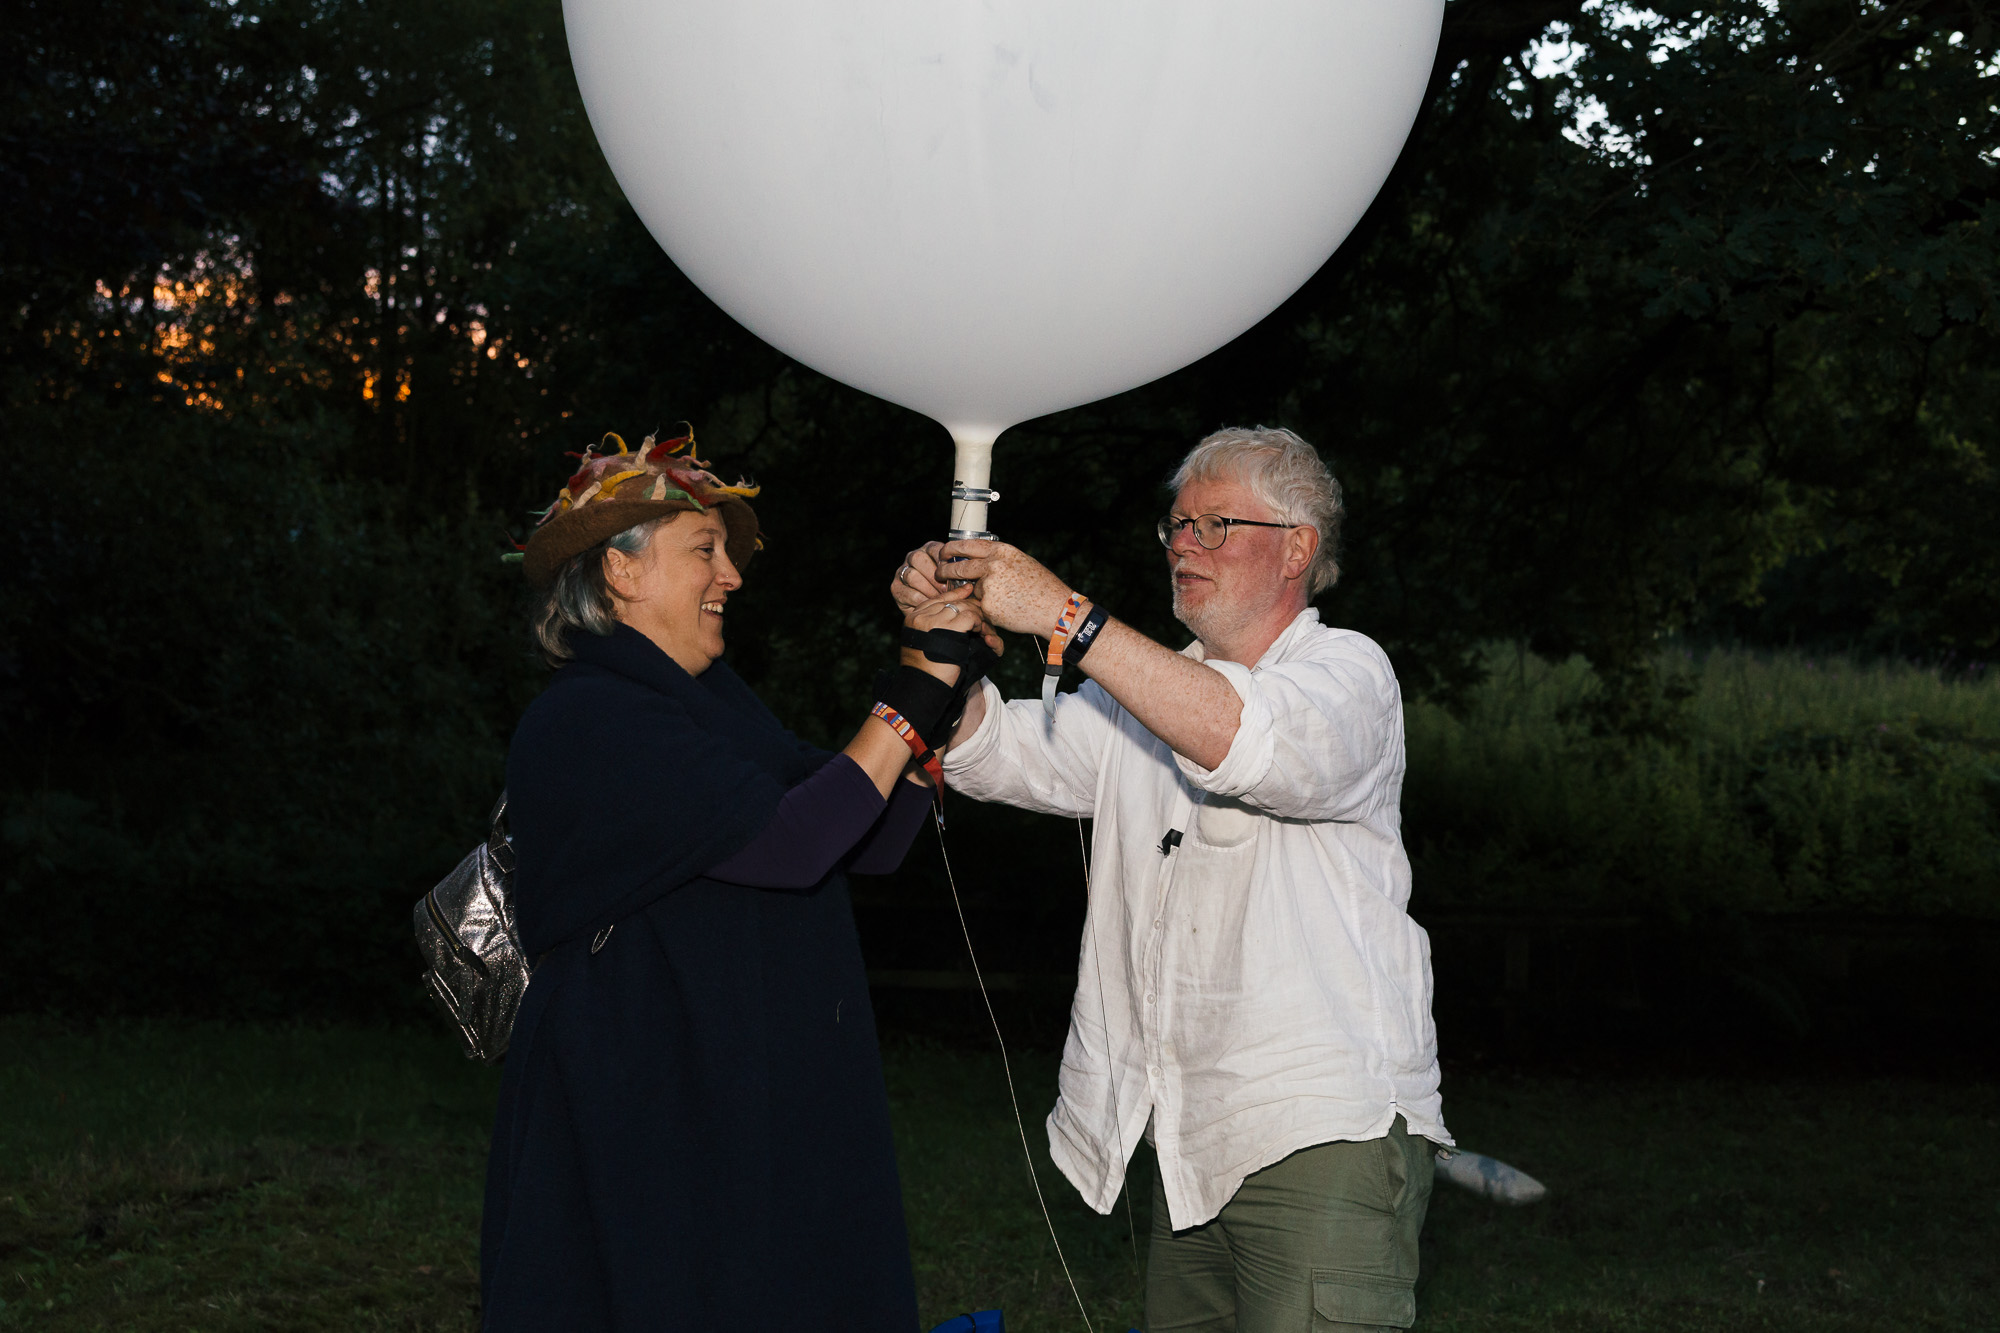 Wide shot of Jo Verrent and artist, Aidan Moesby, holding a very large white balloon up, both clasping their hands around of the base of it. There is a symmetry to the picture in that Aidan and Jo are stood roughly opposite each other in profile, with the base of the balloon situated at the centre of the image. Jo is smiling, whereas Aidan observes the balloon with a look of concentration on his face.